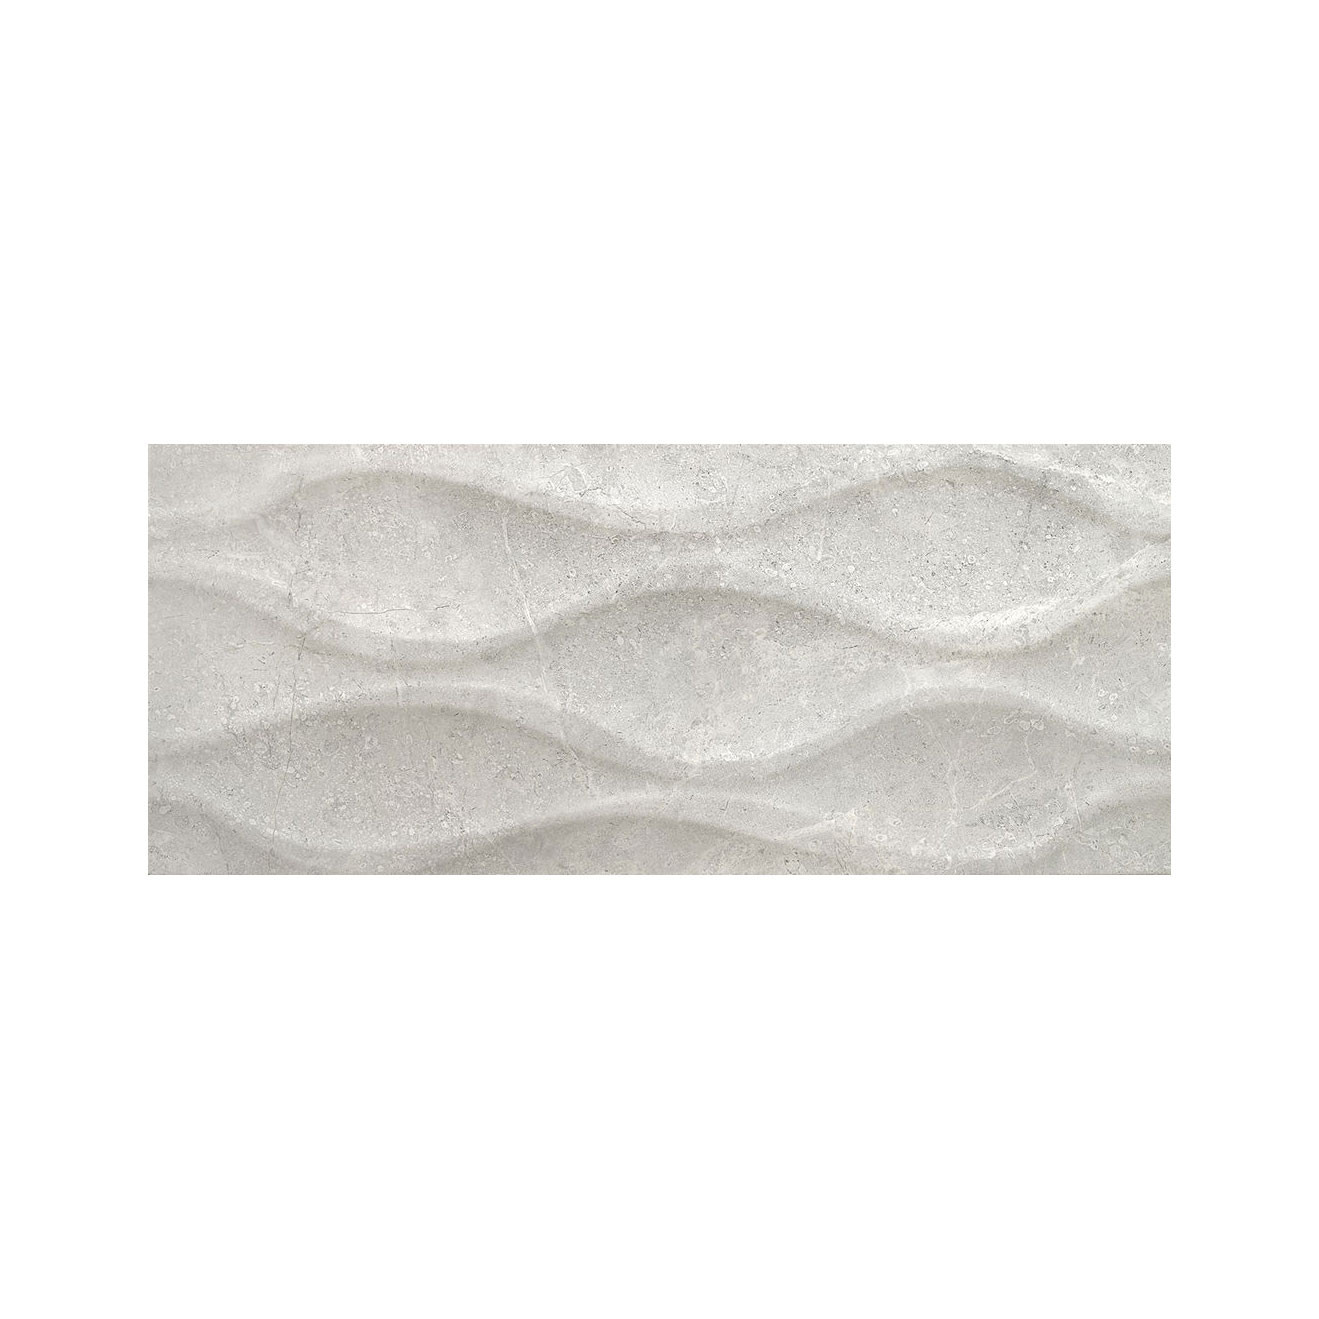 Carrelage mural gris Relieve Luxe Pearl Brillant 25x60 cm